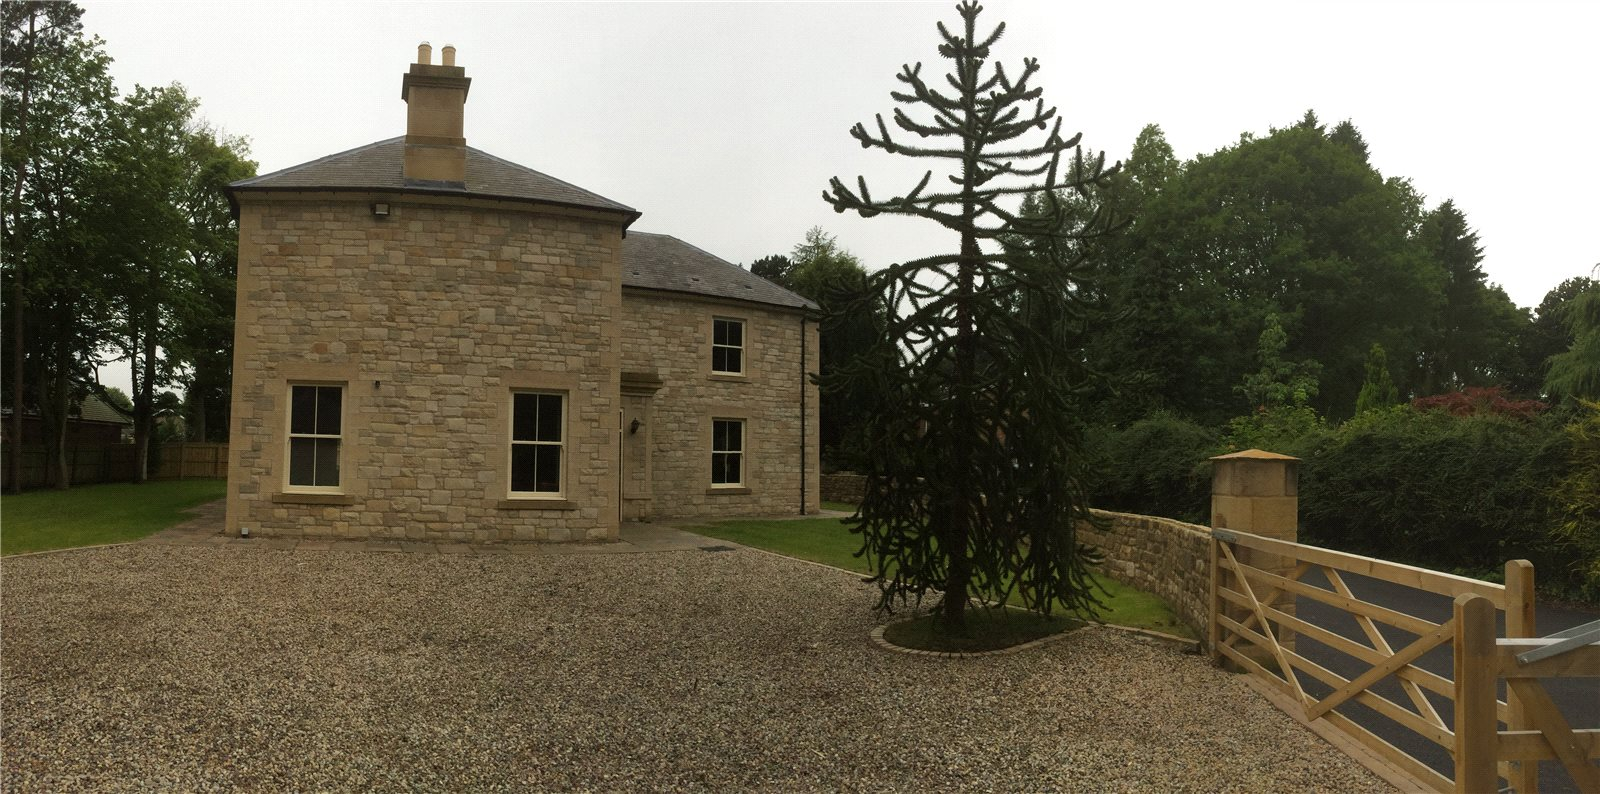 Additional photo for property listing at Fir Tree Copse, Hepscott, Morpeth, Northumberland, NE61 Morpeth, England